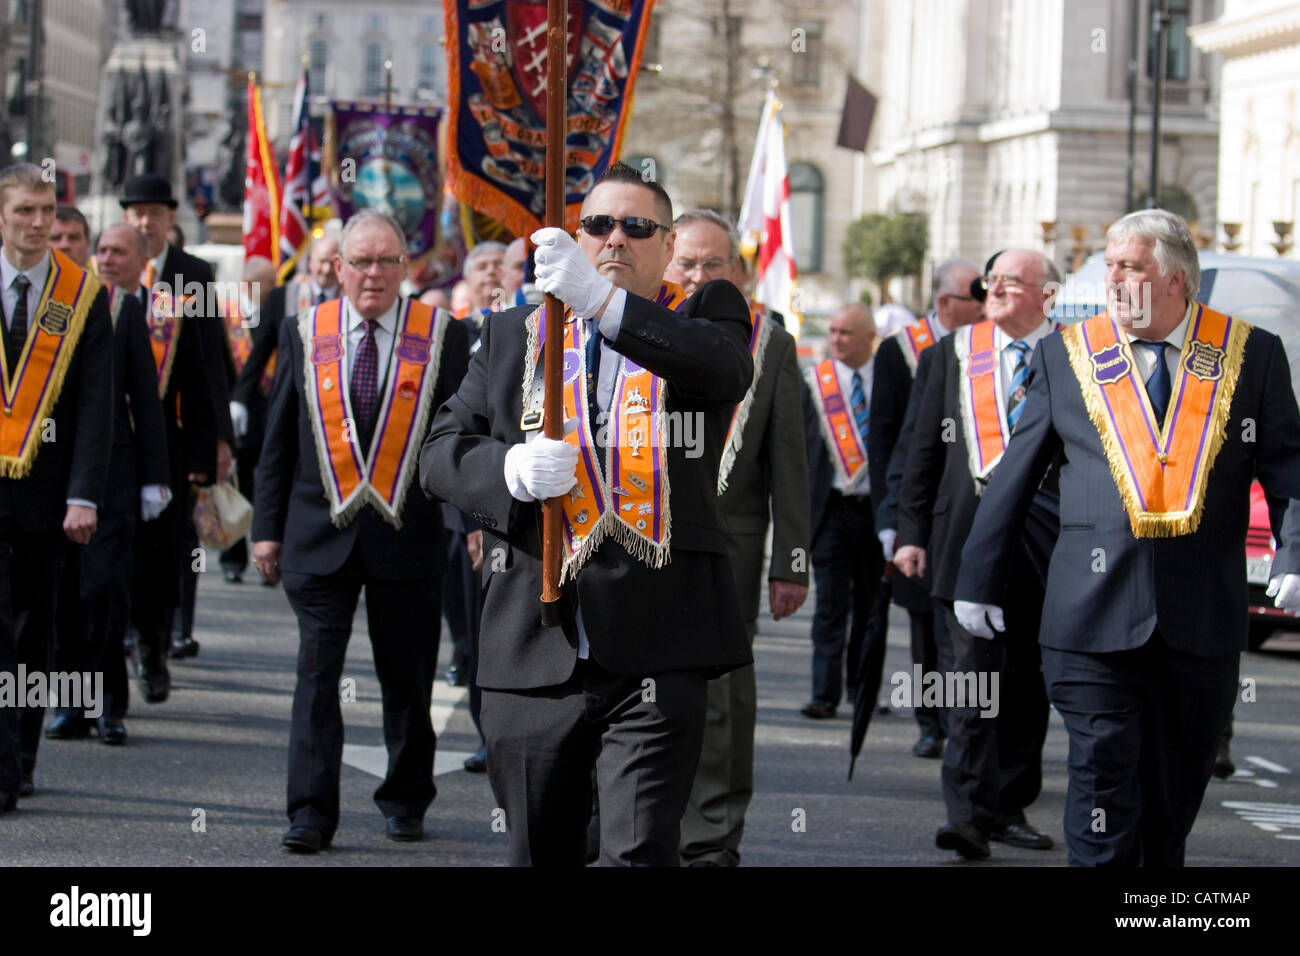 21/04/2012 London UK protestants of the Orange Order march through Central London today, the Orange Lodge, or the - Stock Image